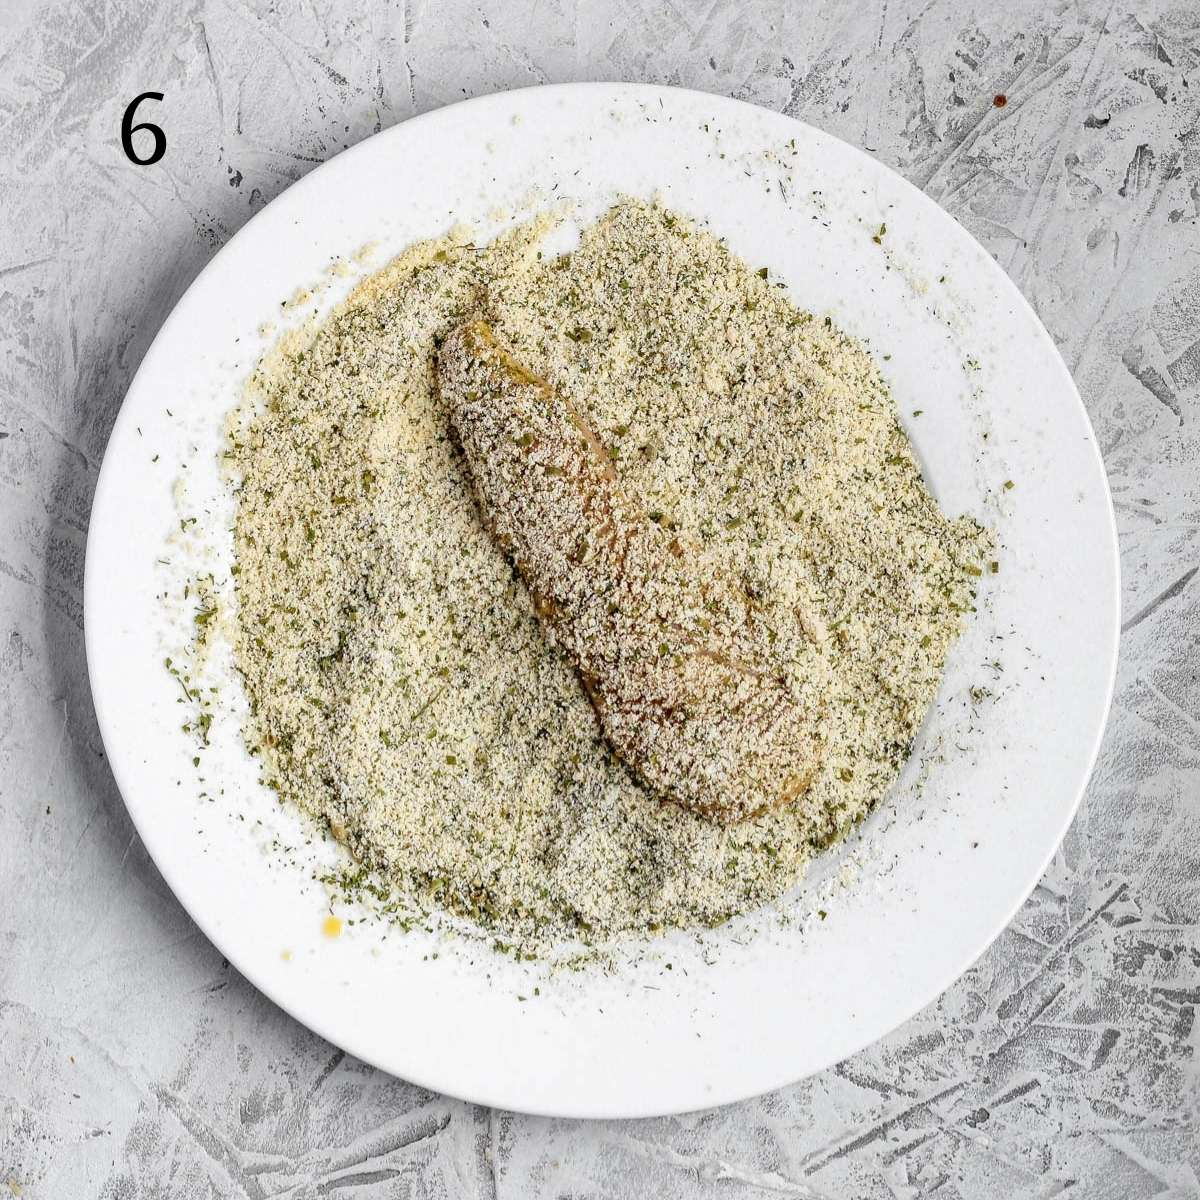 a almond flour mixture on a plate with a chicken tender on top mixed with the almond flour mixtre